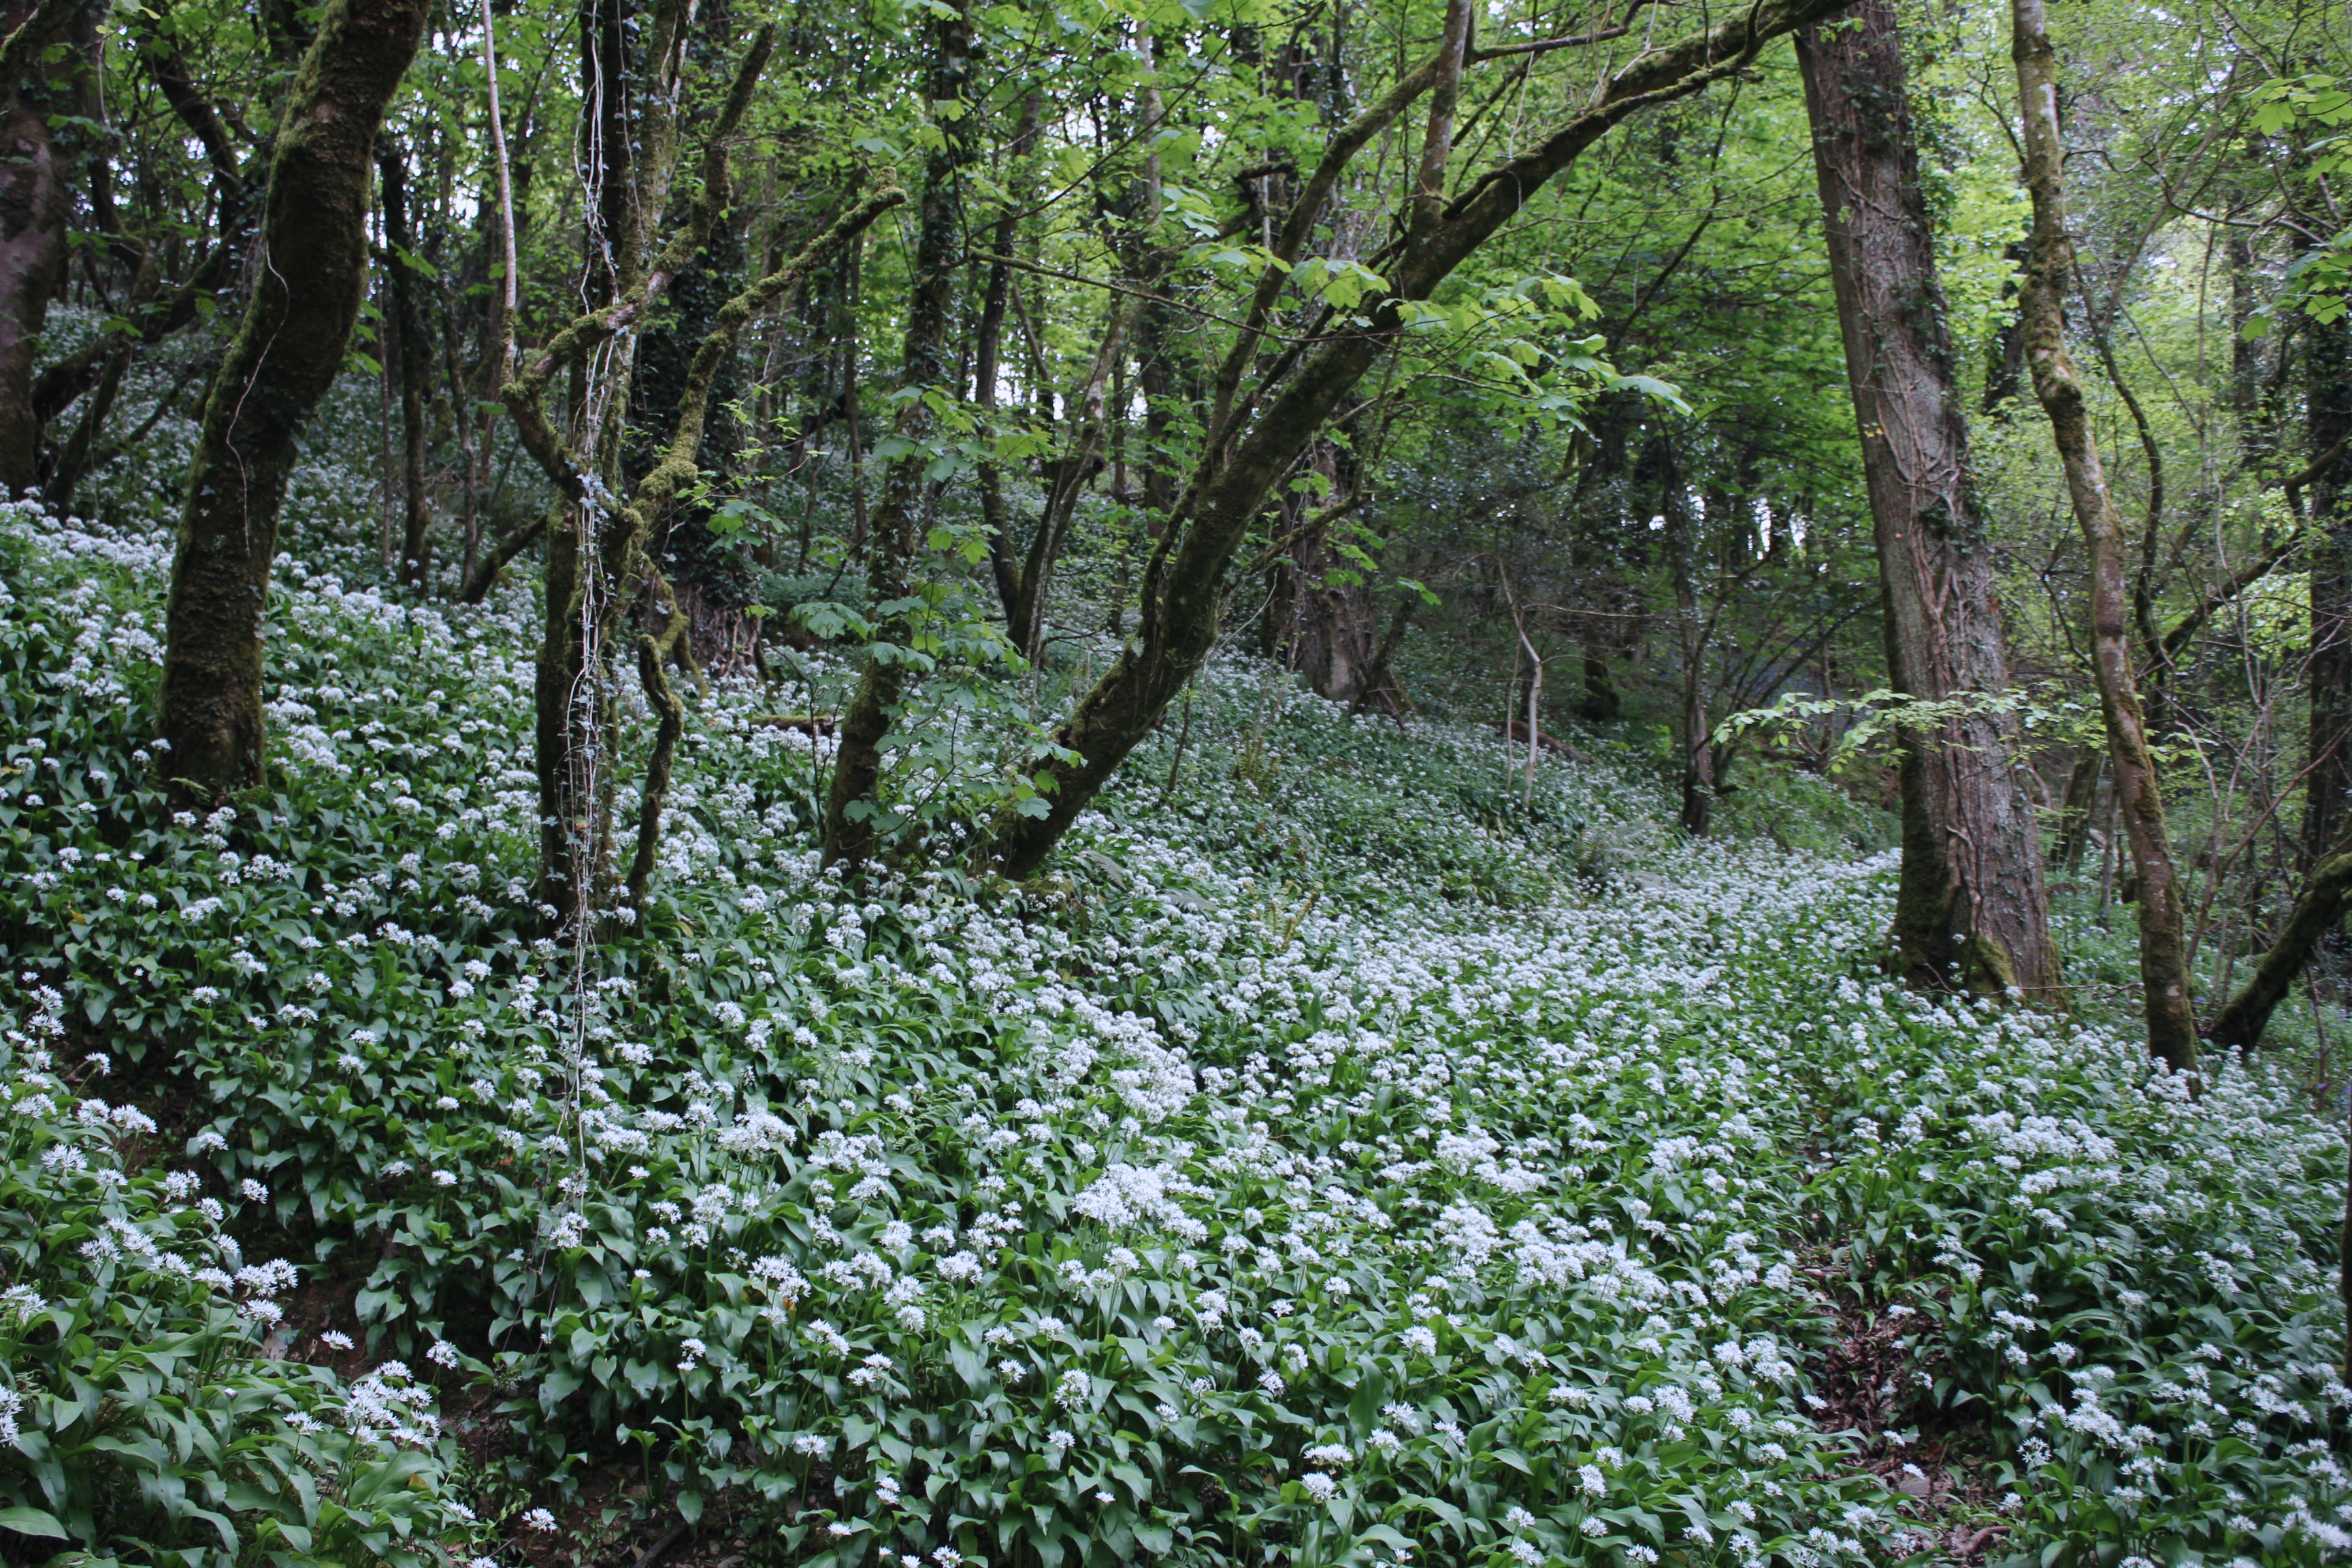 Carpet of wild garlic at Lydford Gorge, Devon